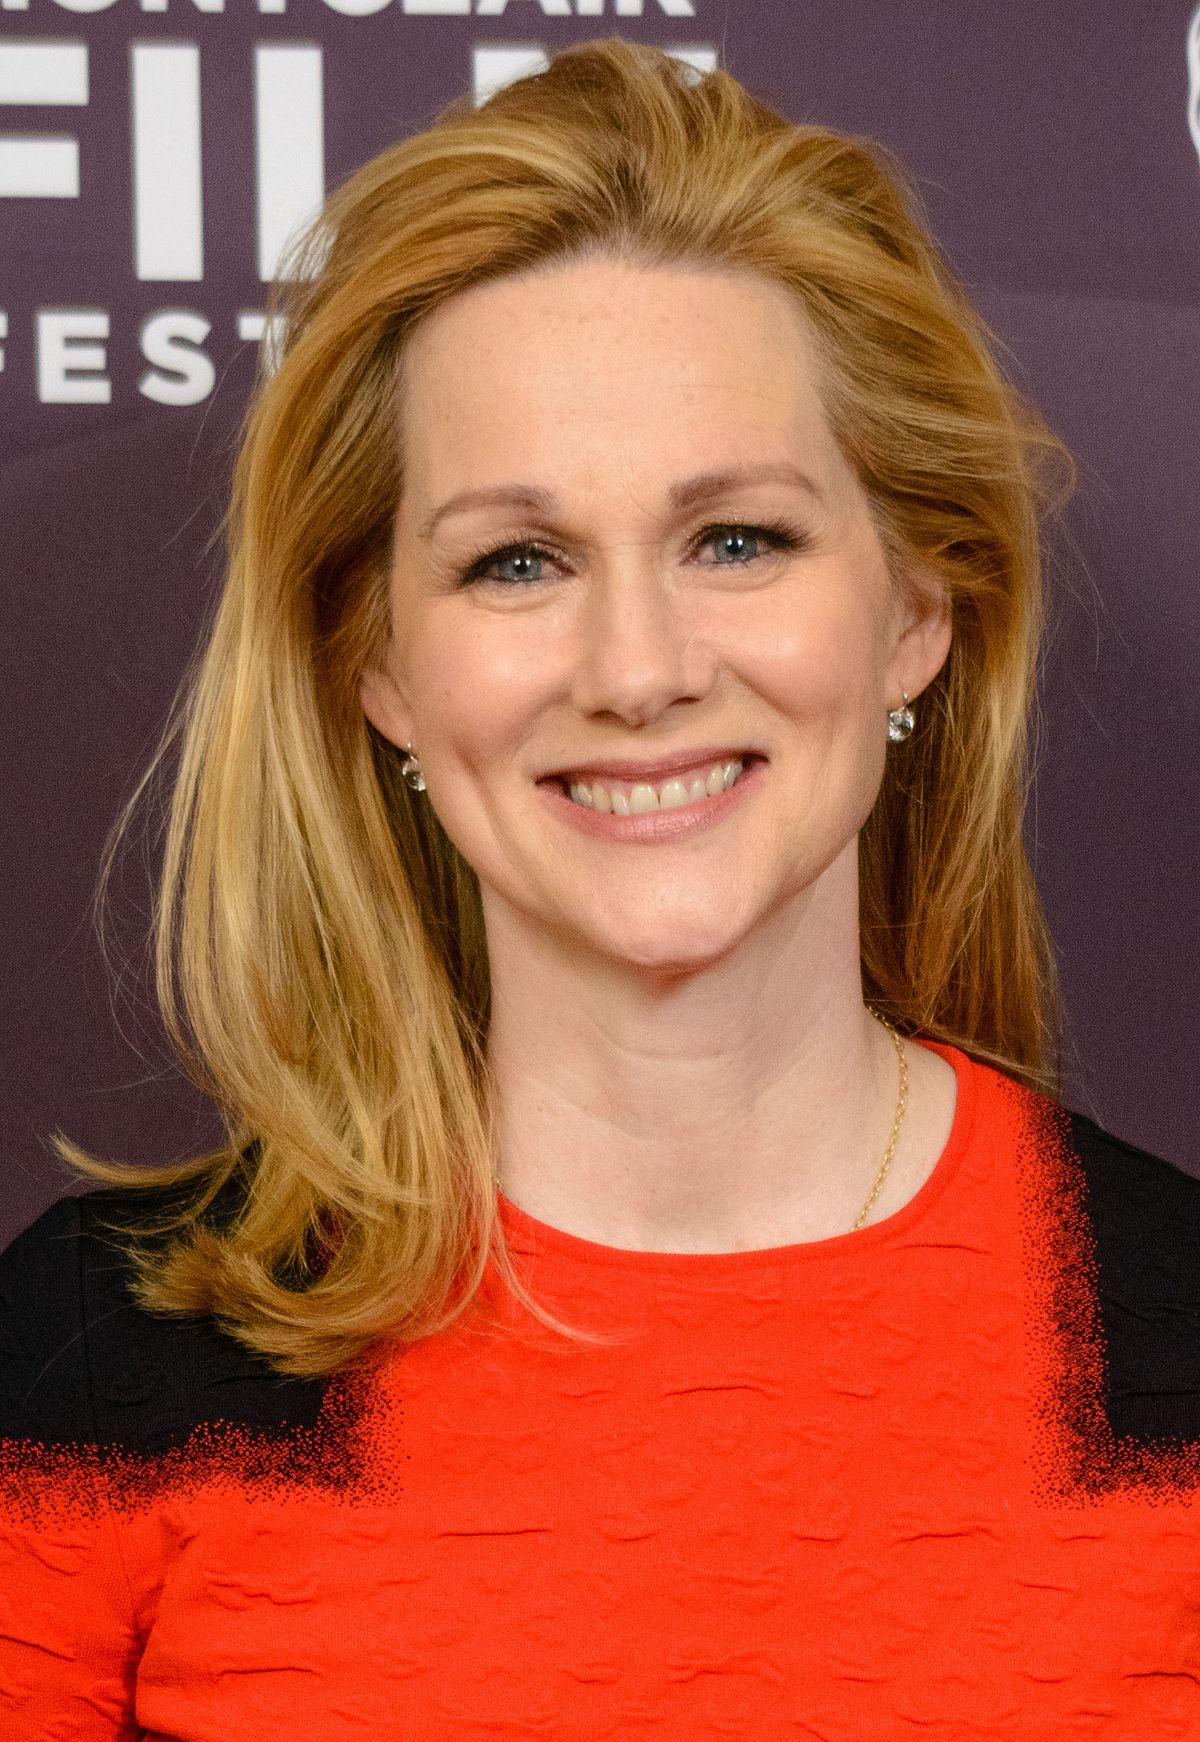 Avengers Infinity War as well Laura Linney besides Sui He as well Beat Shazam Fox Previews New Name Tune Game Show furthermore Portrait 258783. on golden globe award